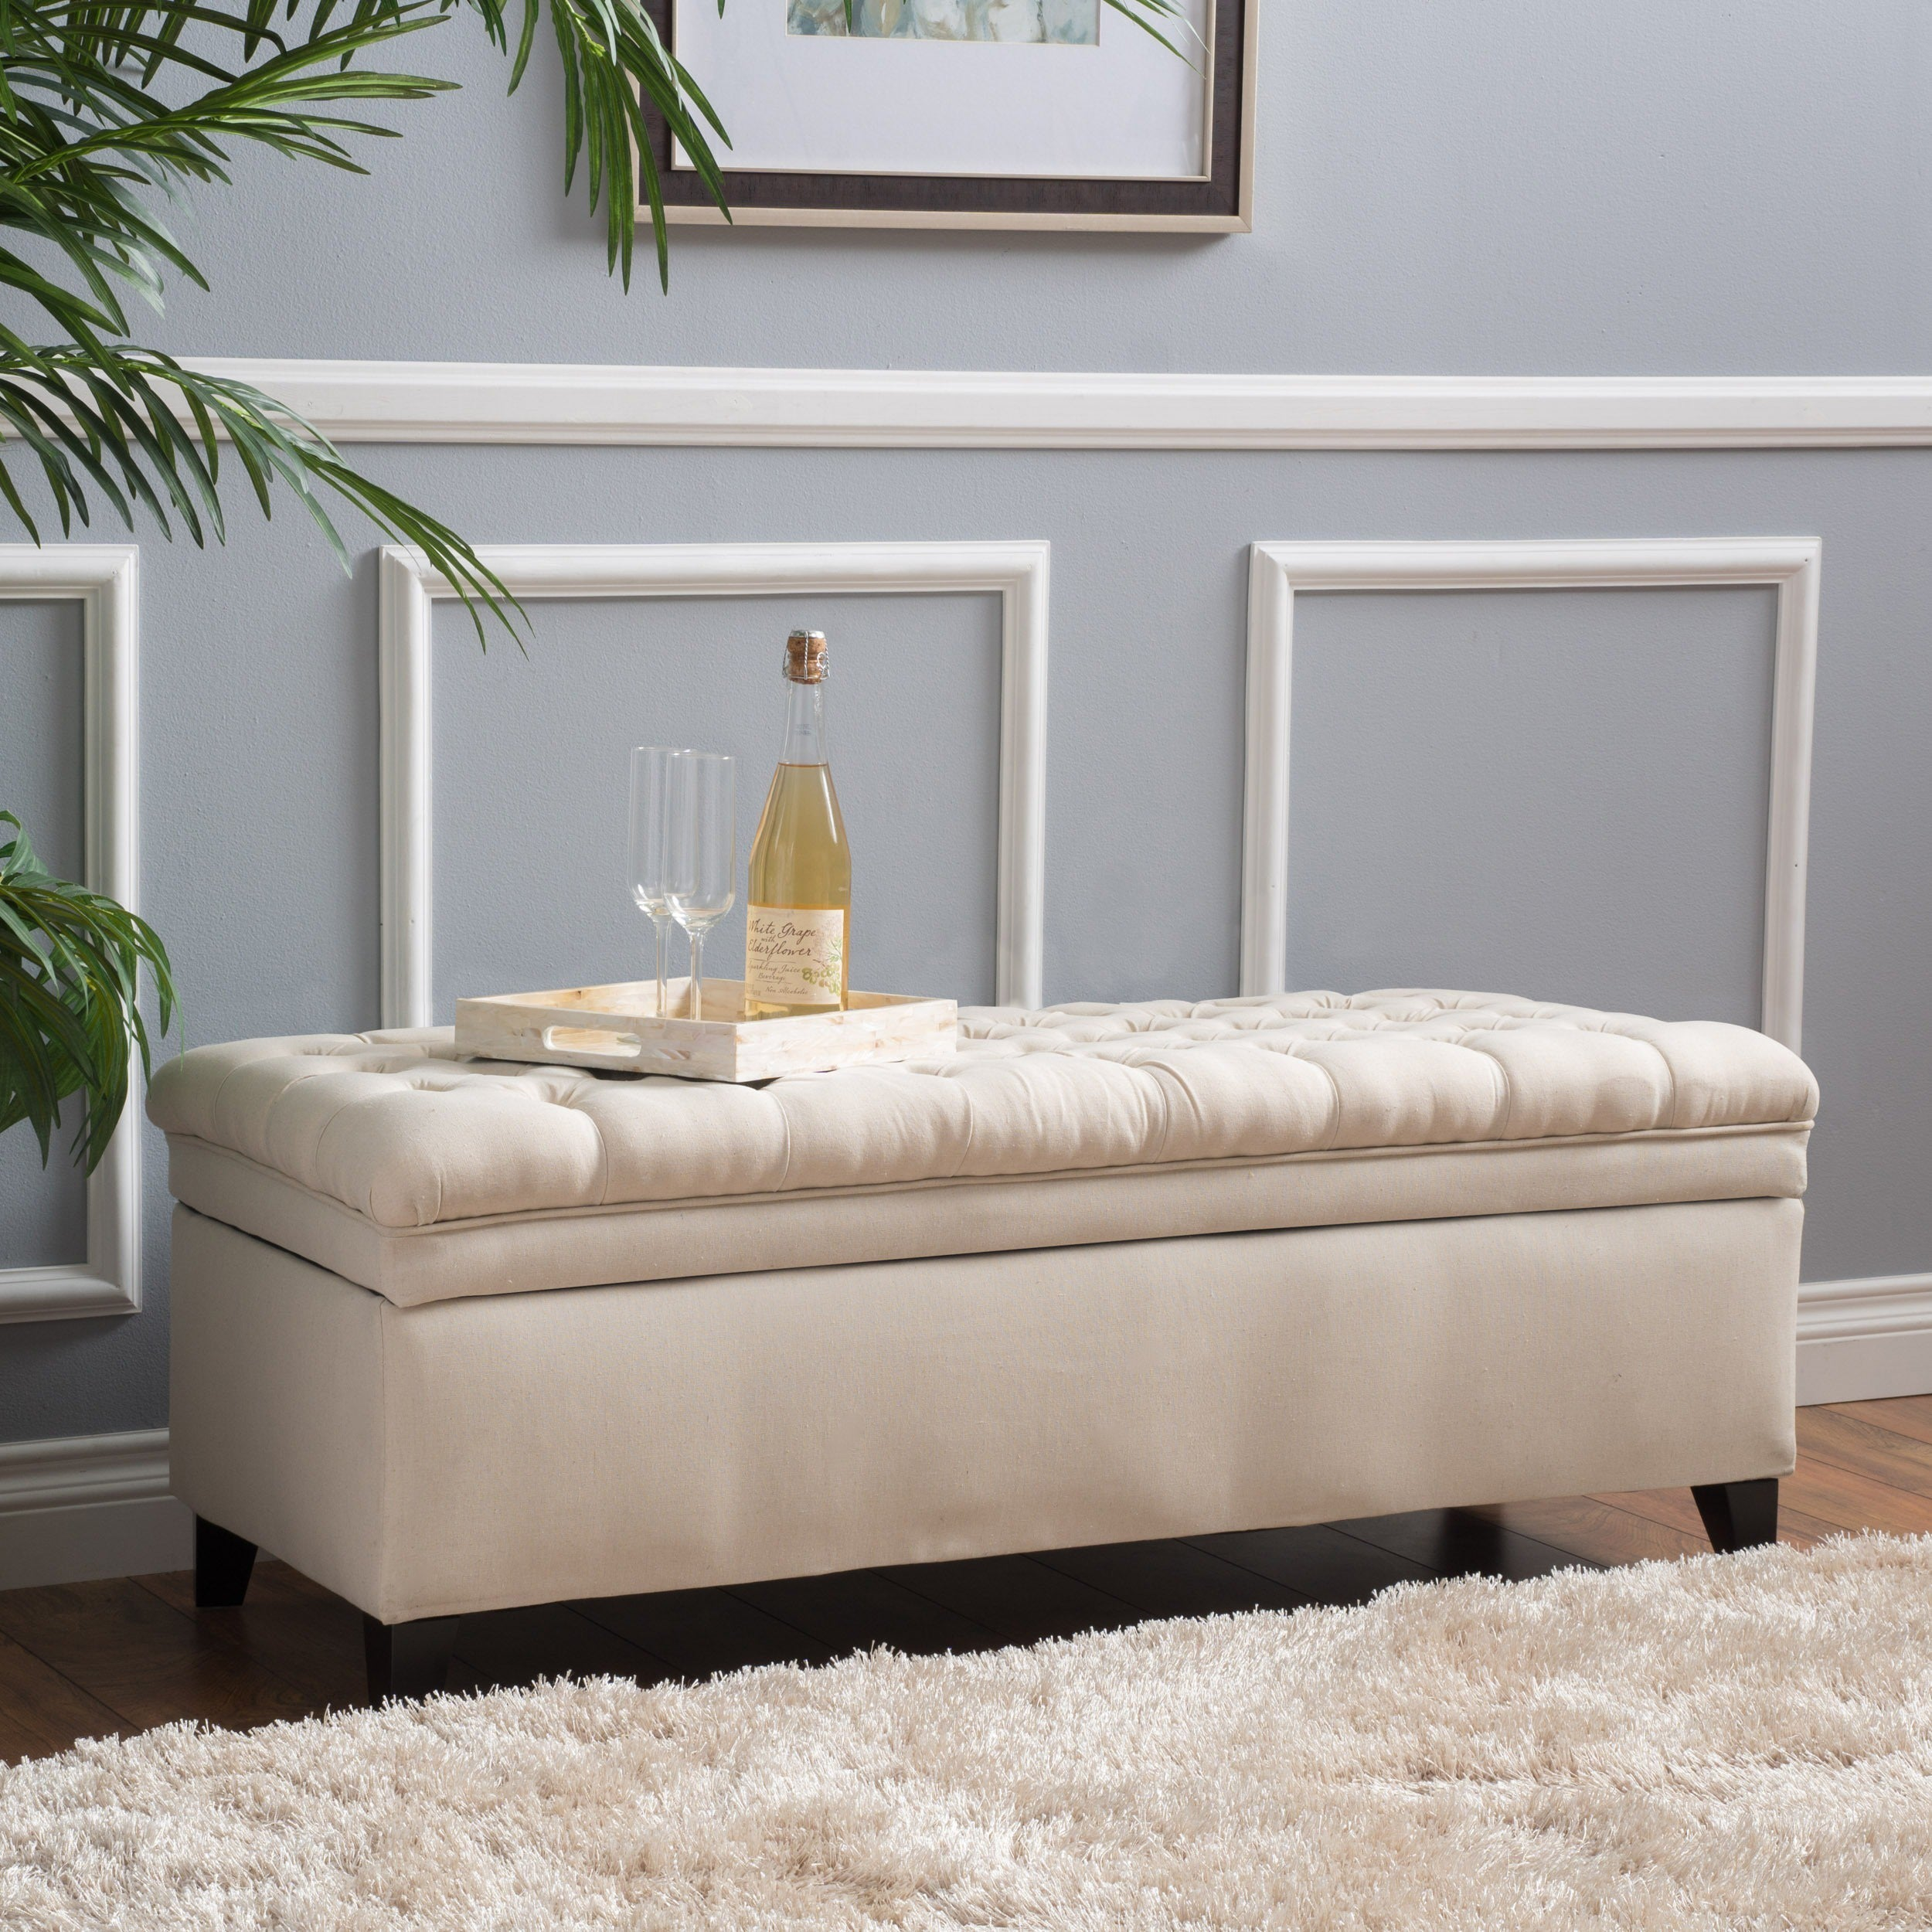 Details about Large Decorative Storage Ottoman Bench Fabric Tufted Beige  Living Room Bedroom